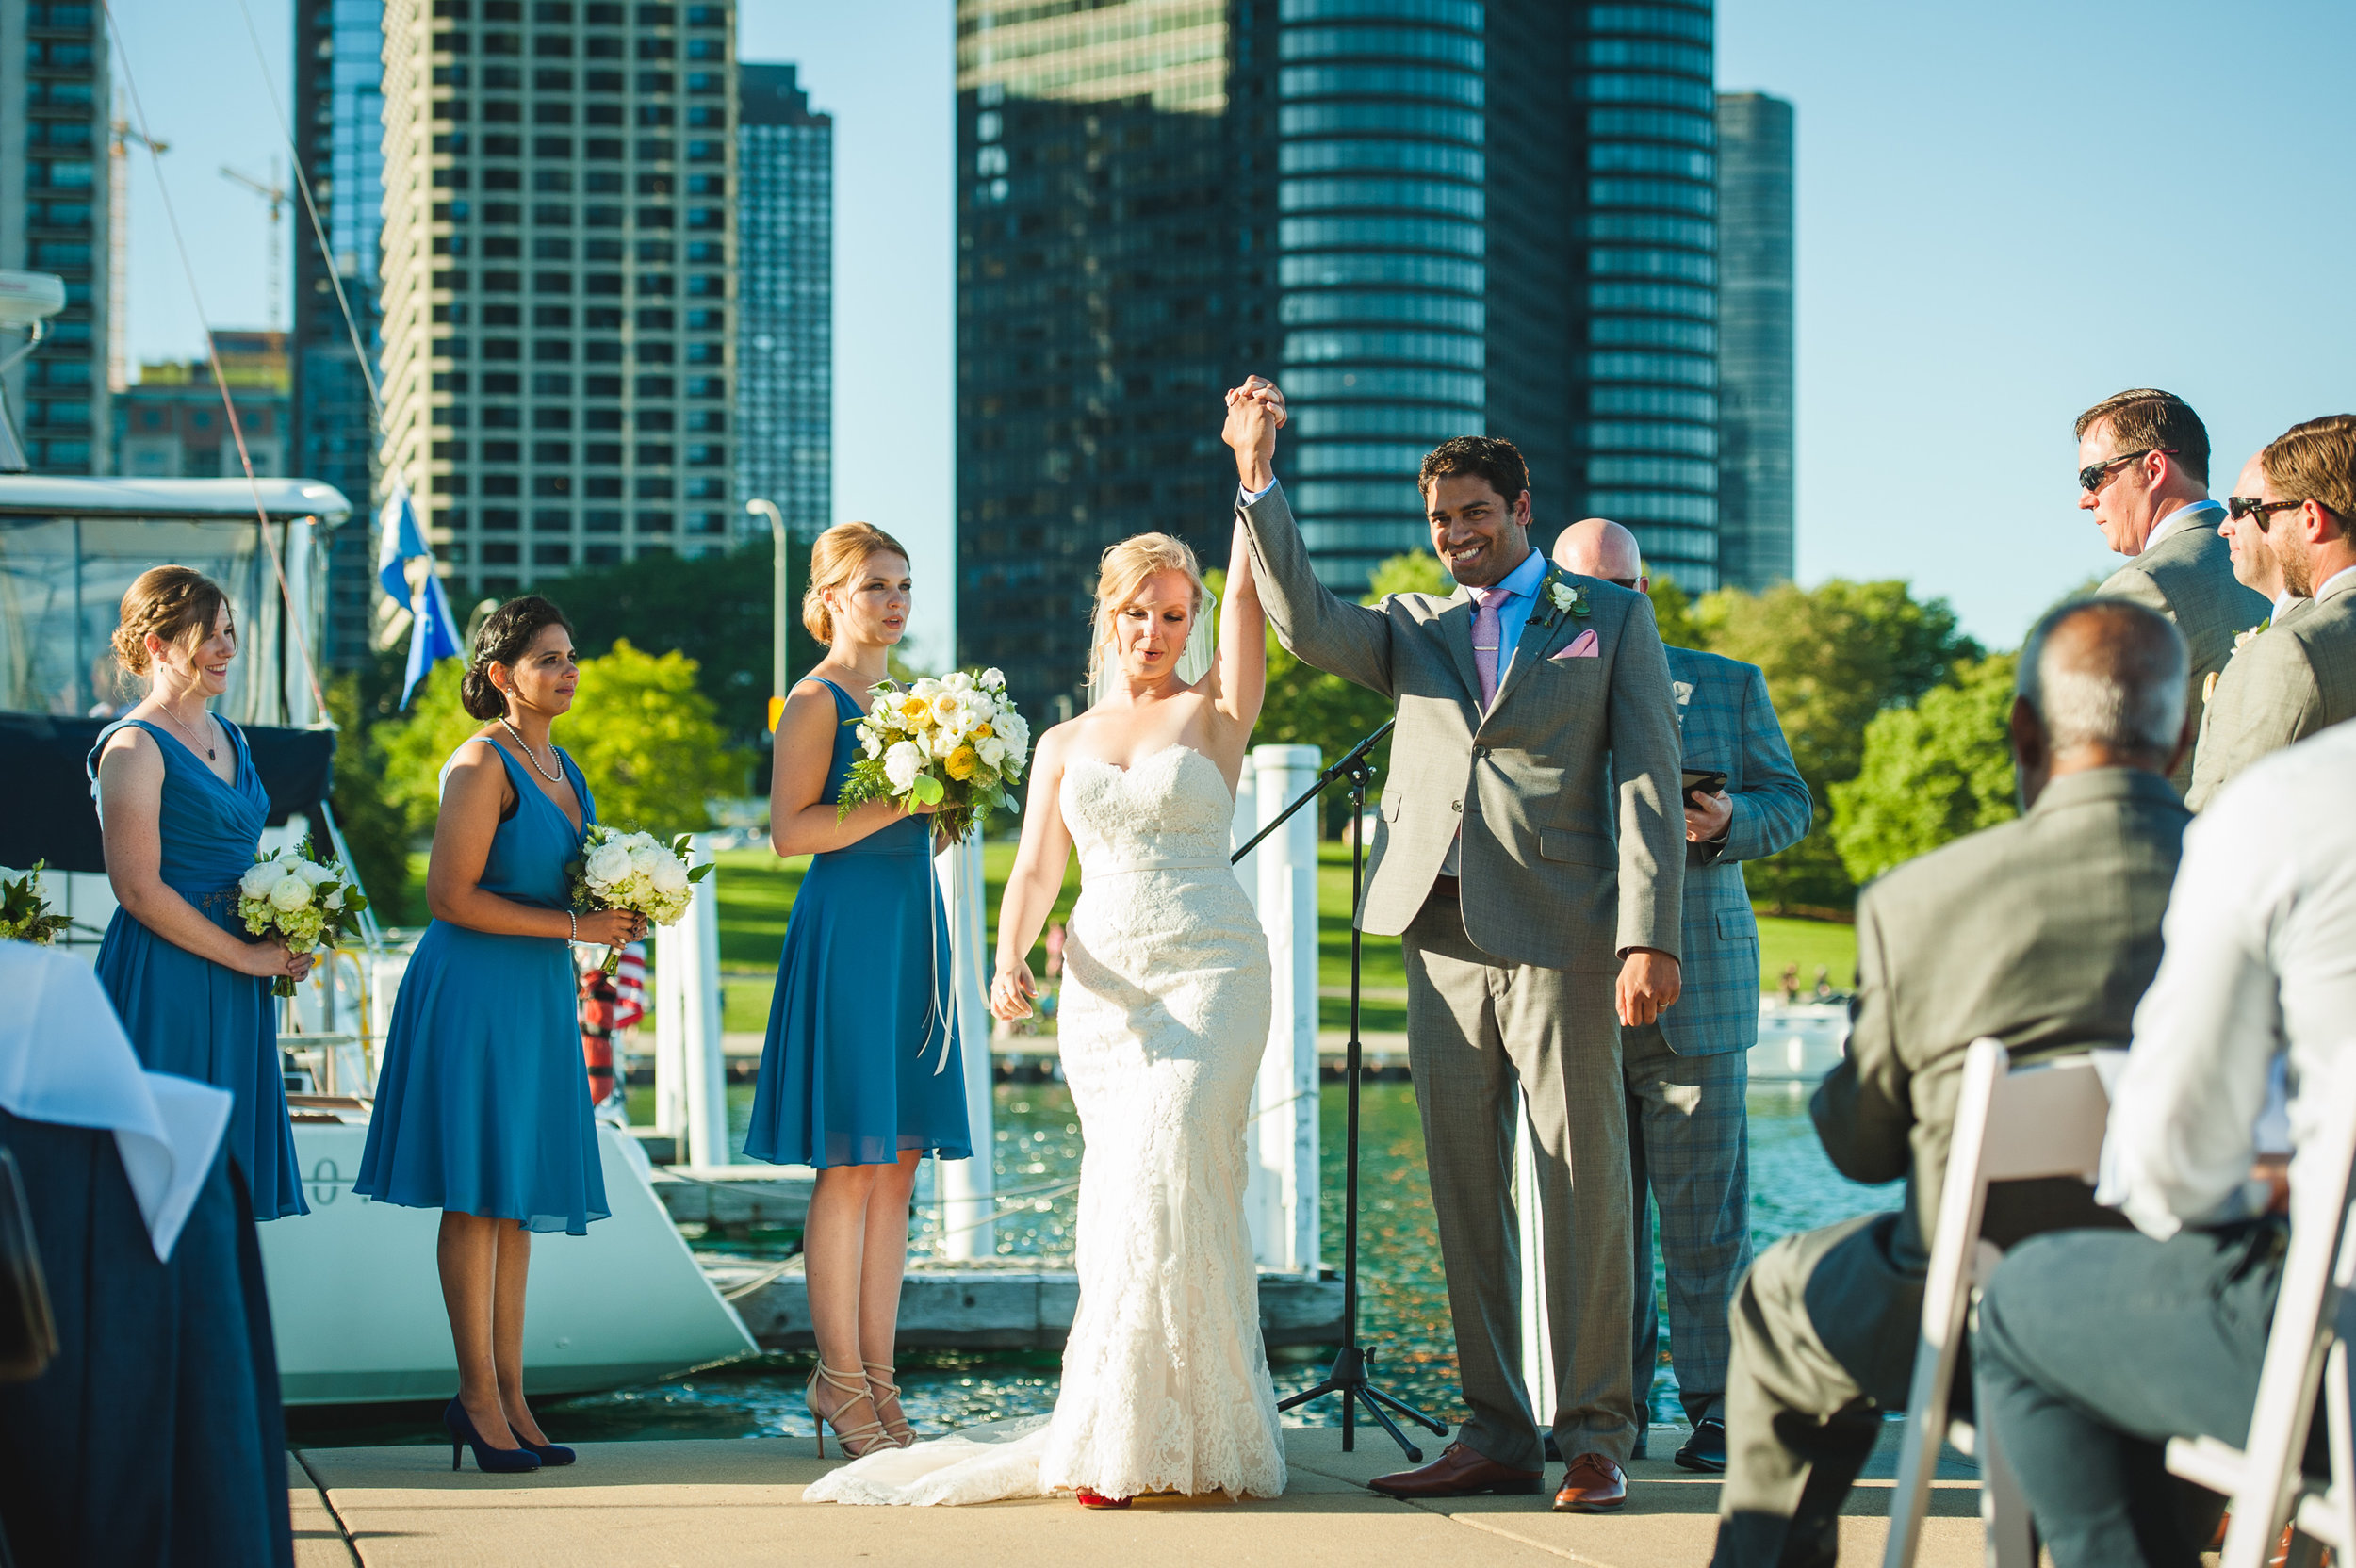 ckp-Chicago-Yacht-Club-Wedding-0071.jpg